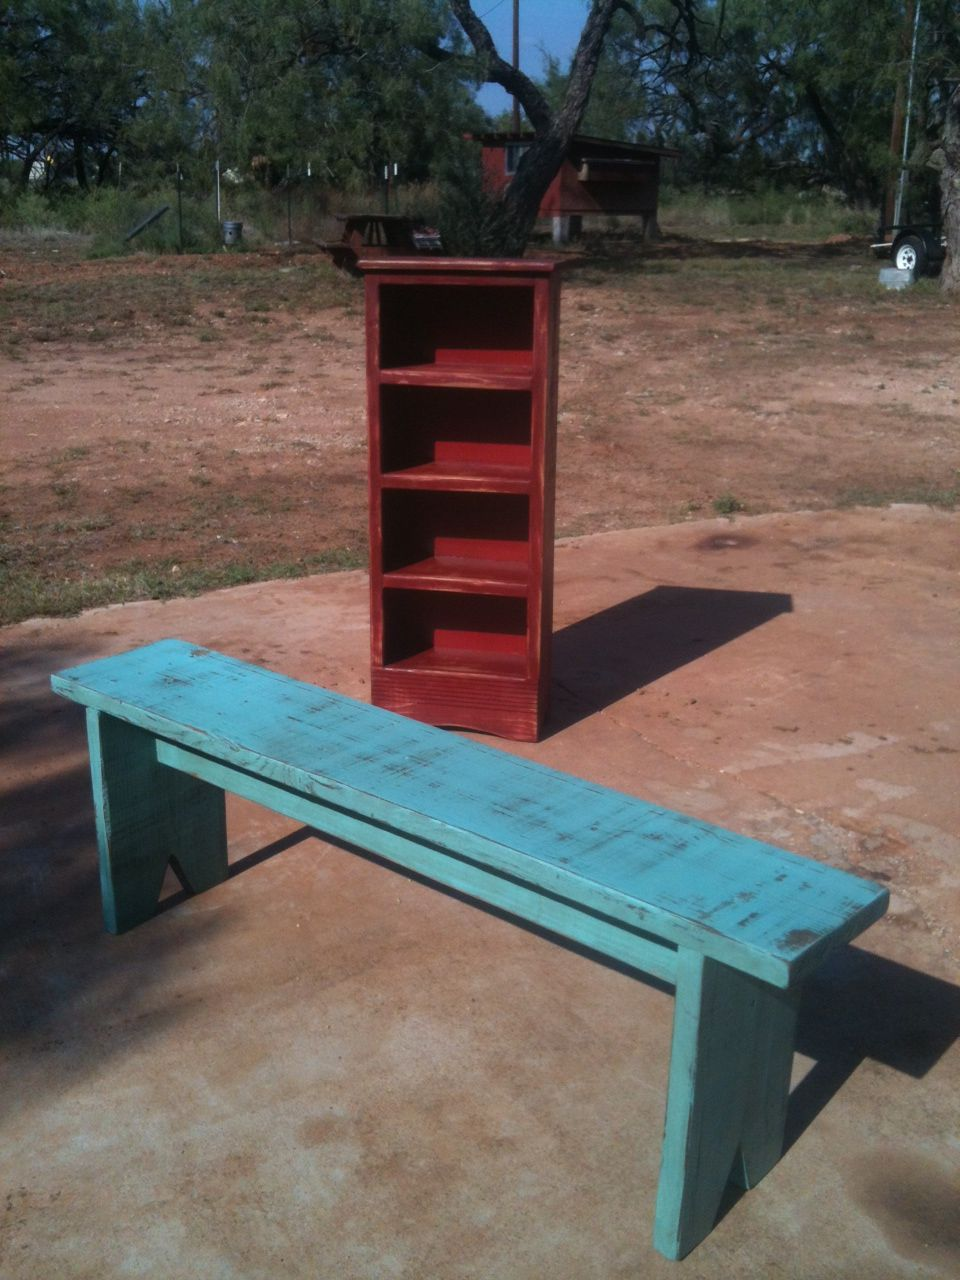 Country porch bench & red shelf unit Porch bench